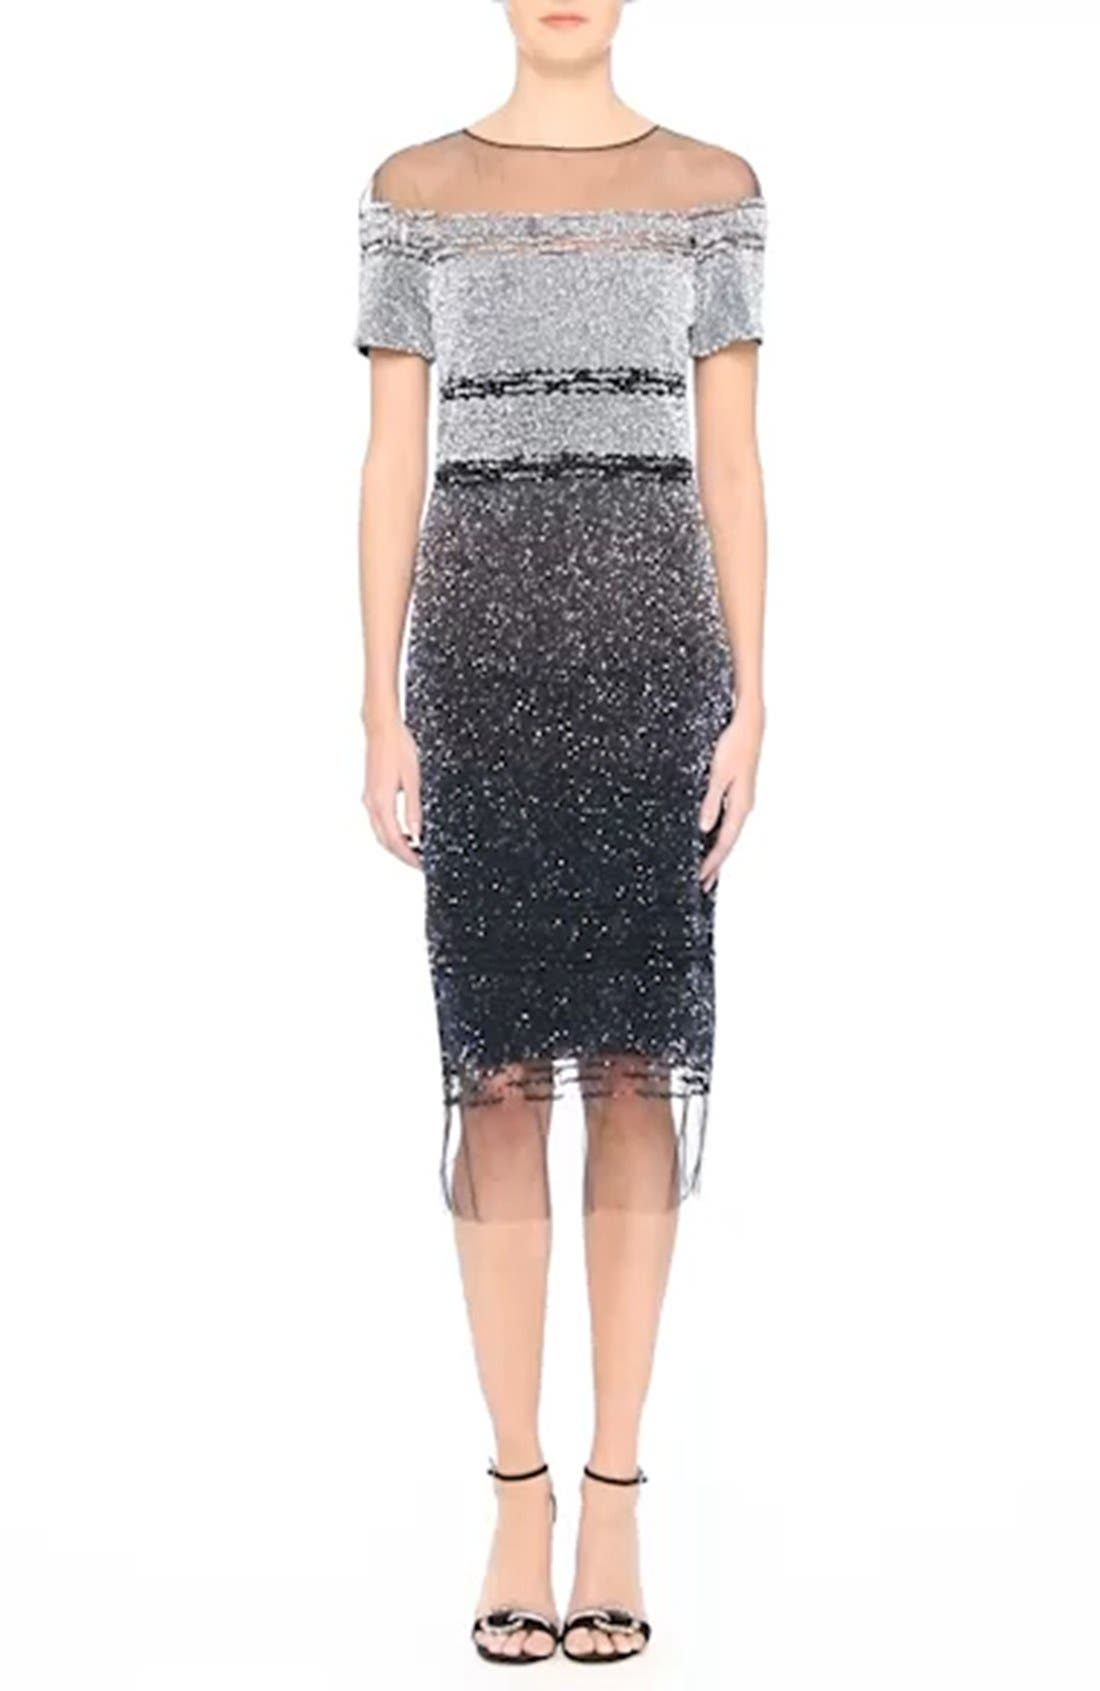 Signature Sequin Cocktail Dress,                             Alternate thumbnail 7, color,                             066